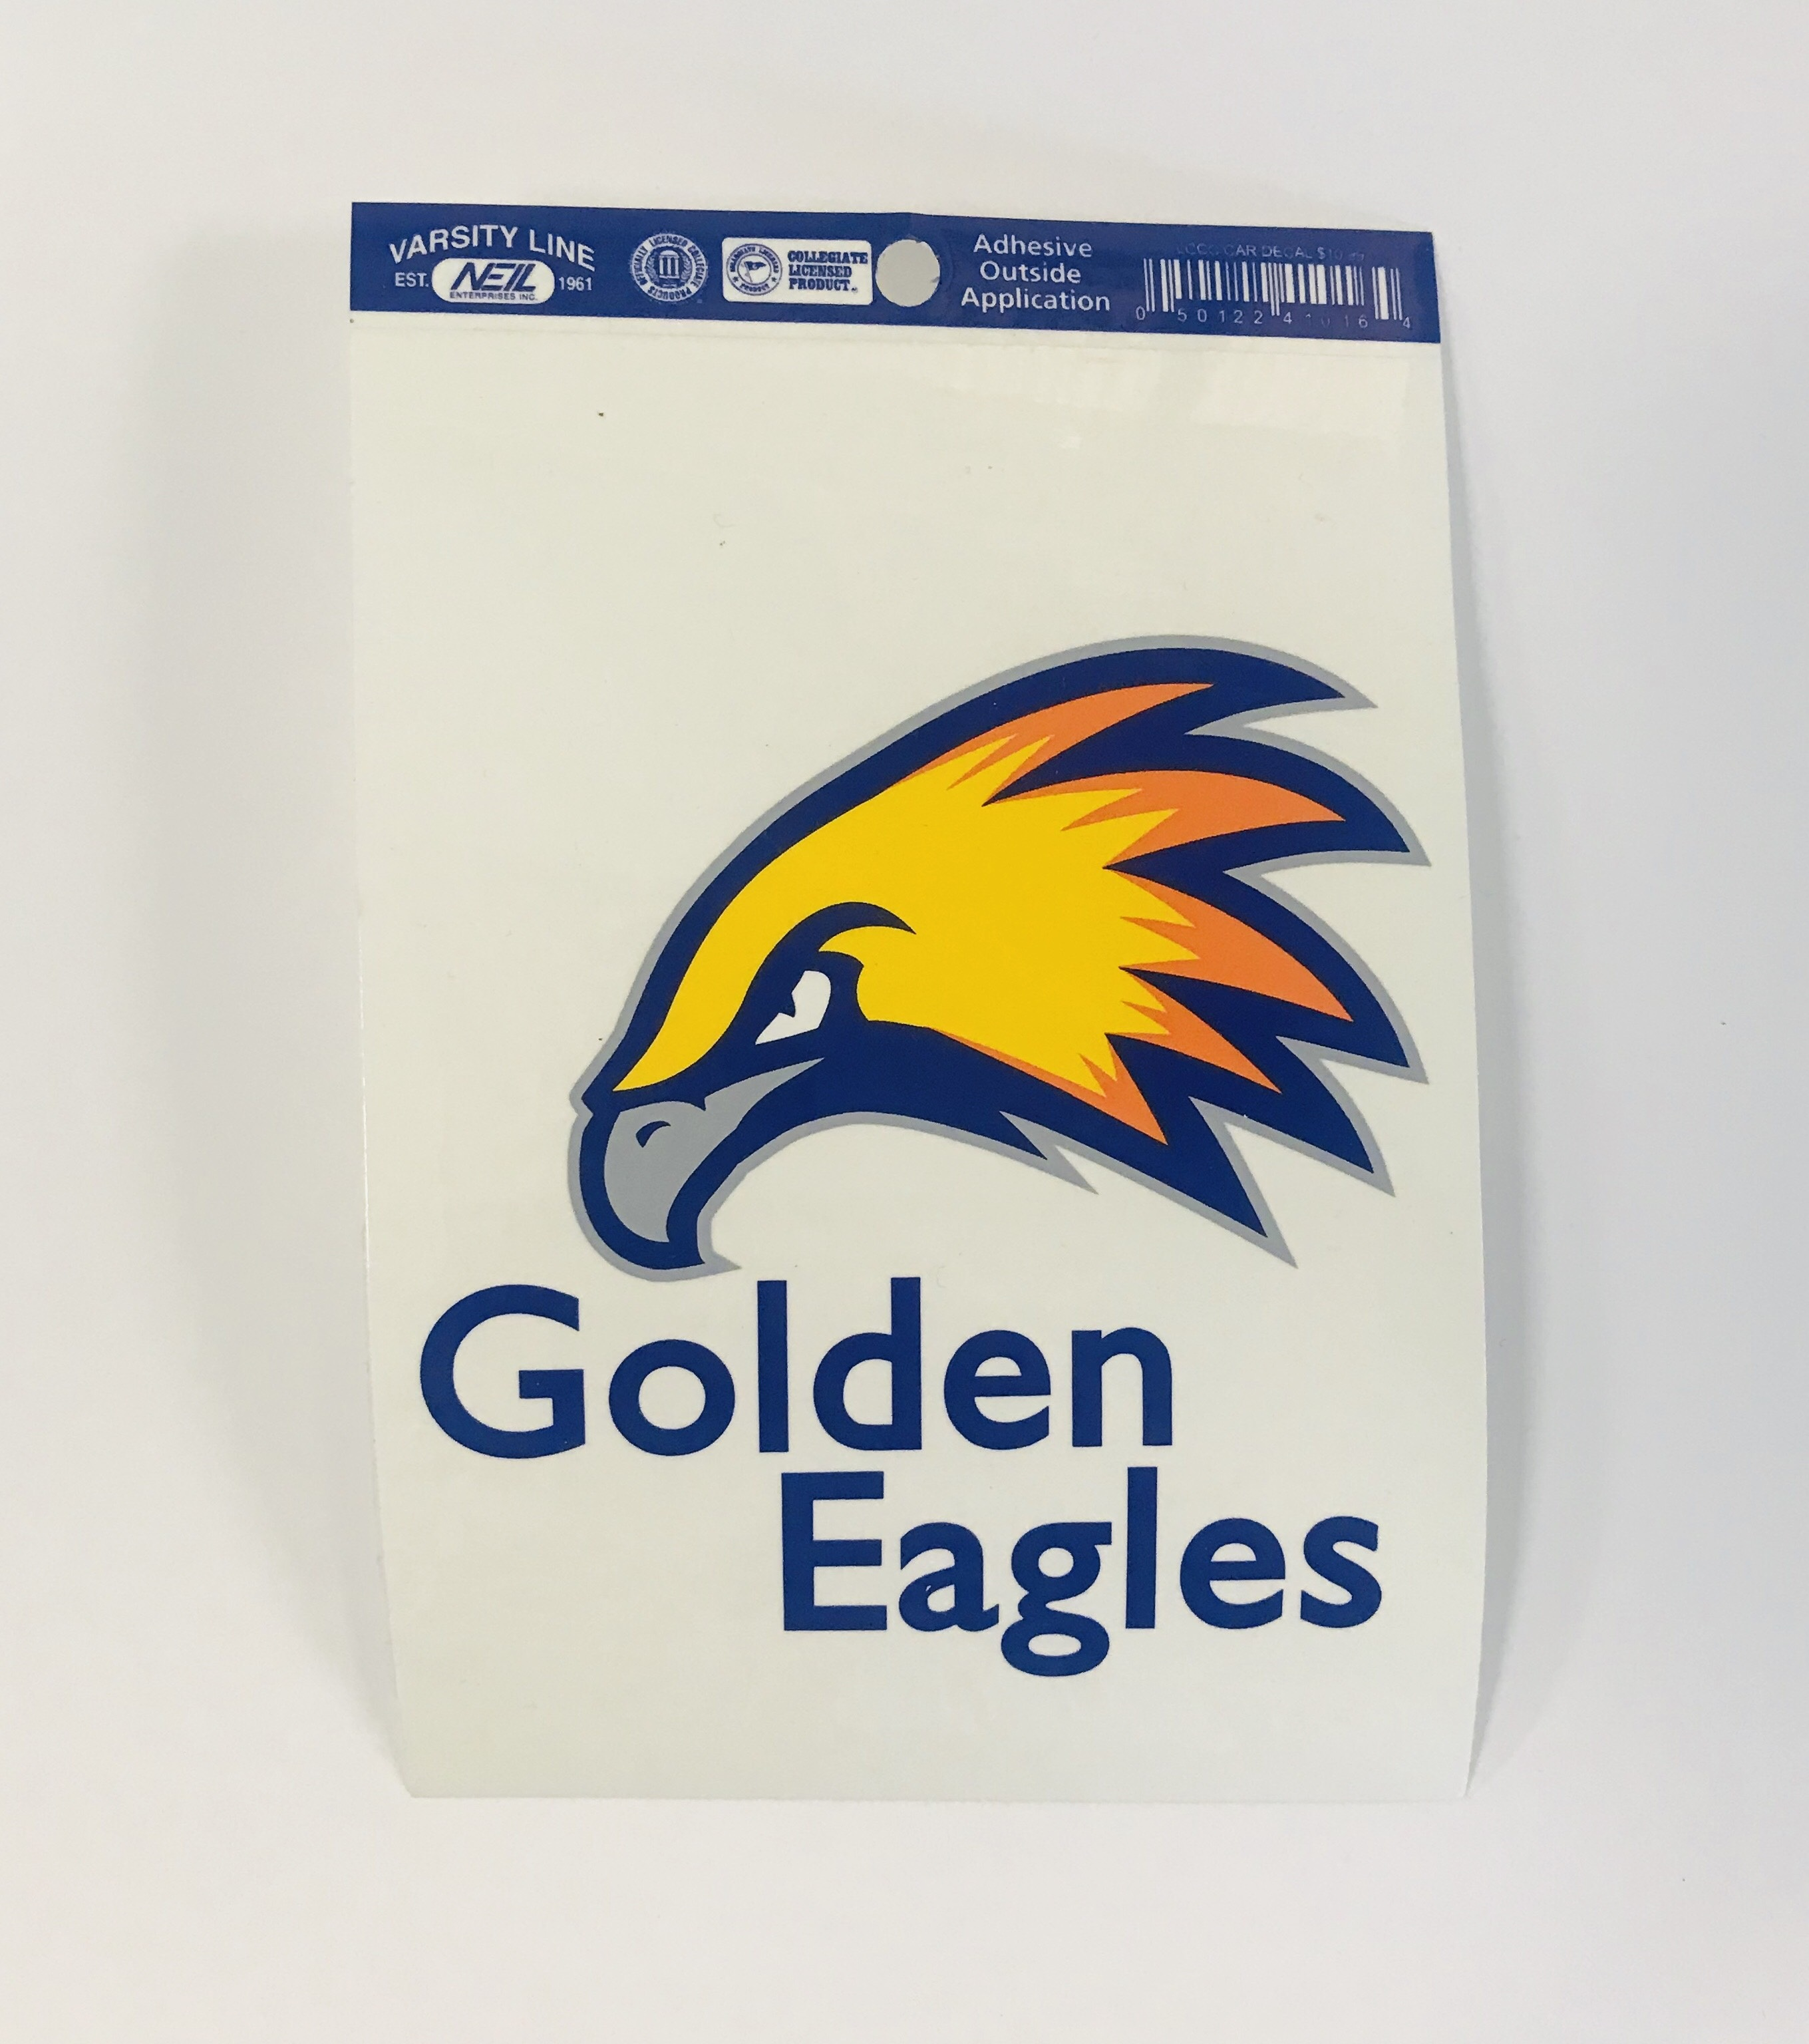 Golden Eagles Adhesive Car Decal